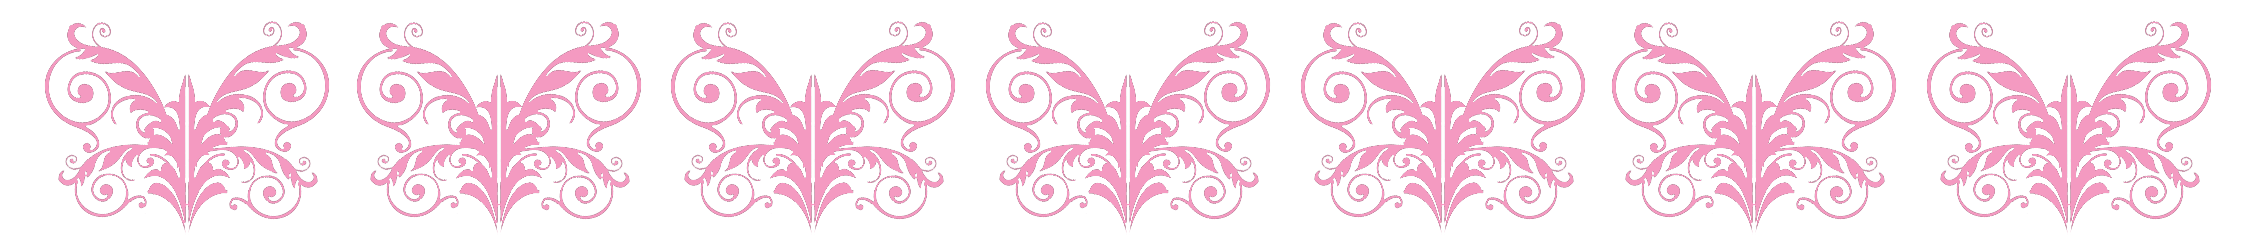 vector royalty free stock Butterflies clipart border. Butterfly as you can.